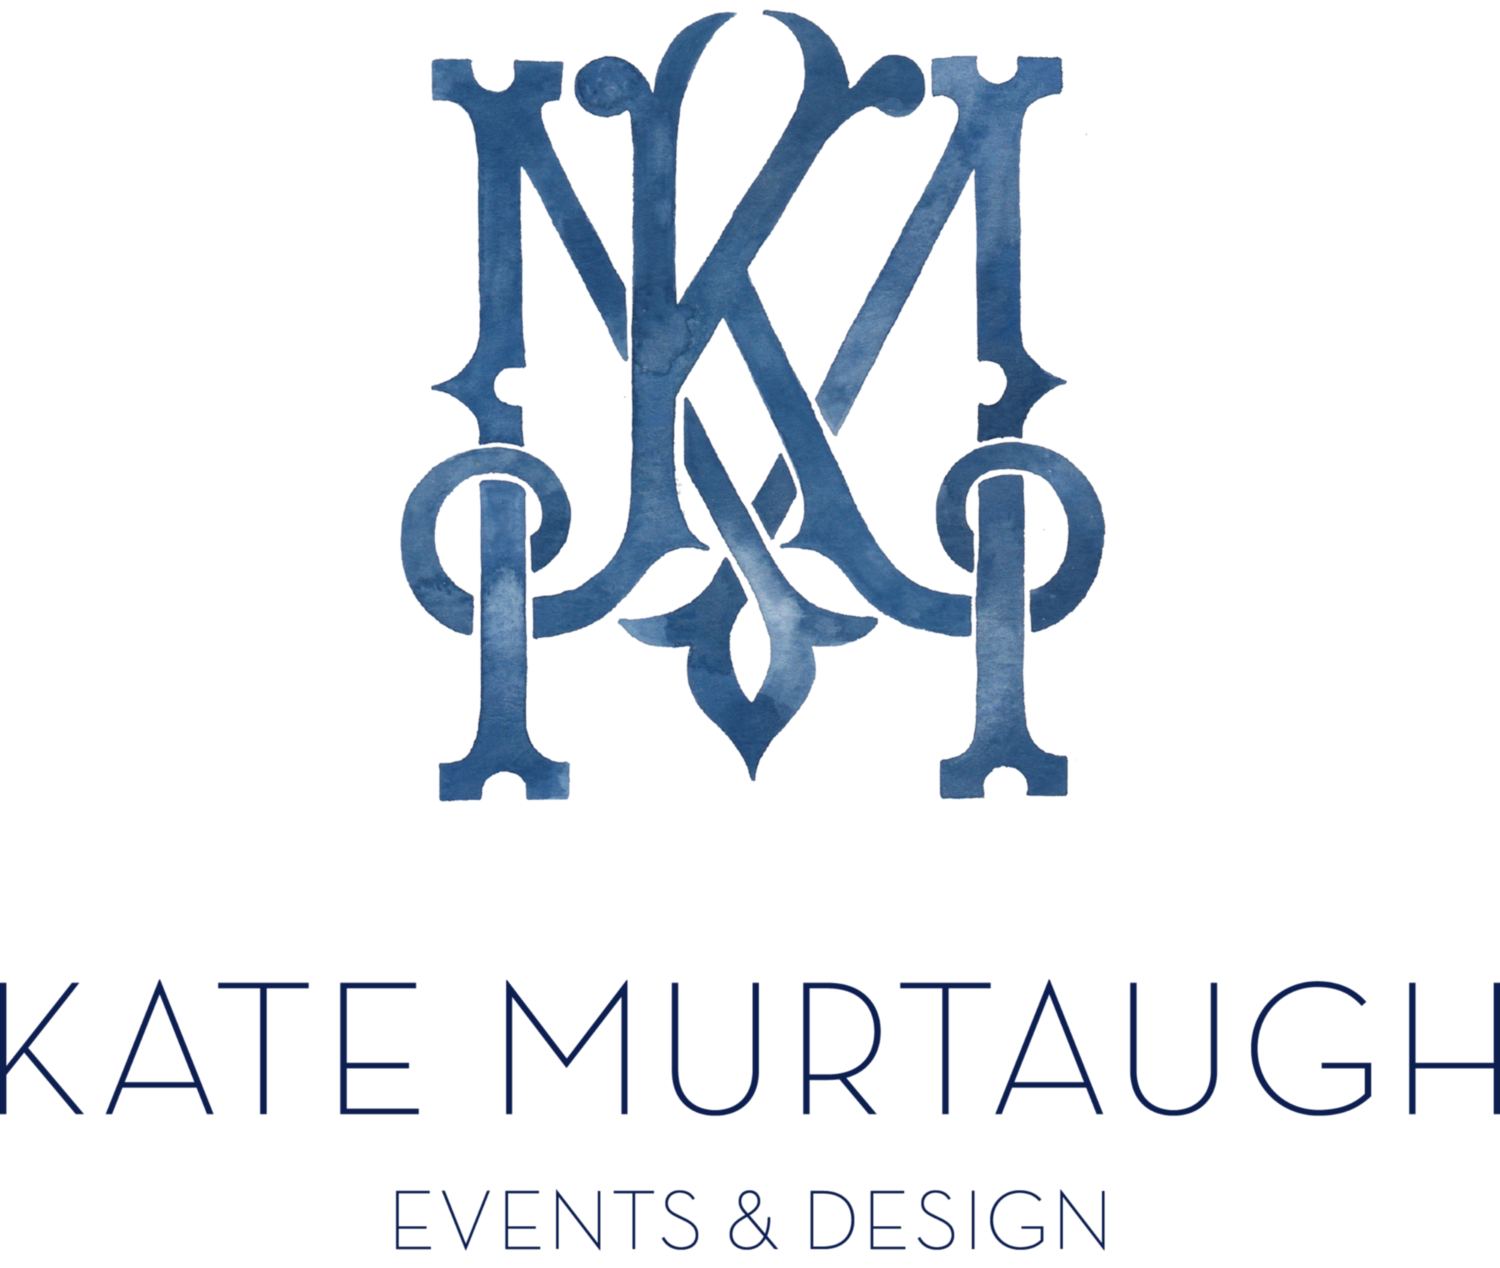 Kate Murtaugh Events & Design